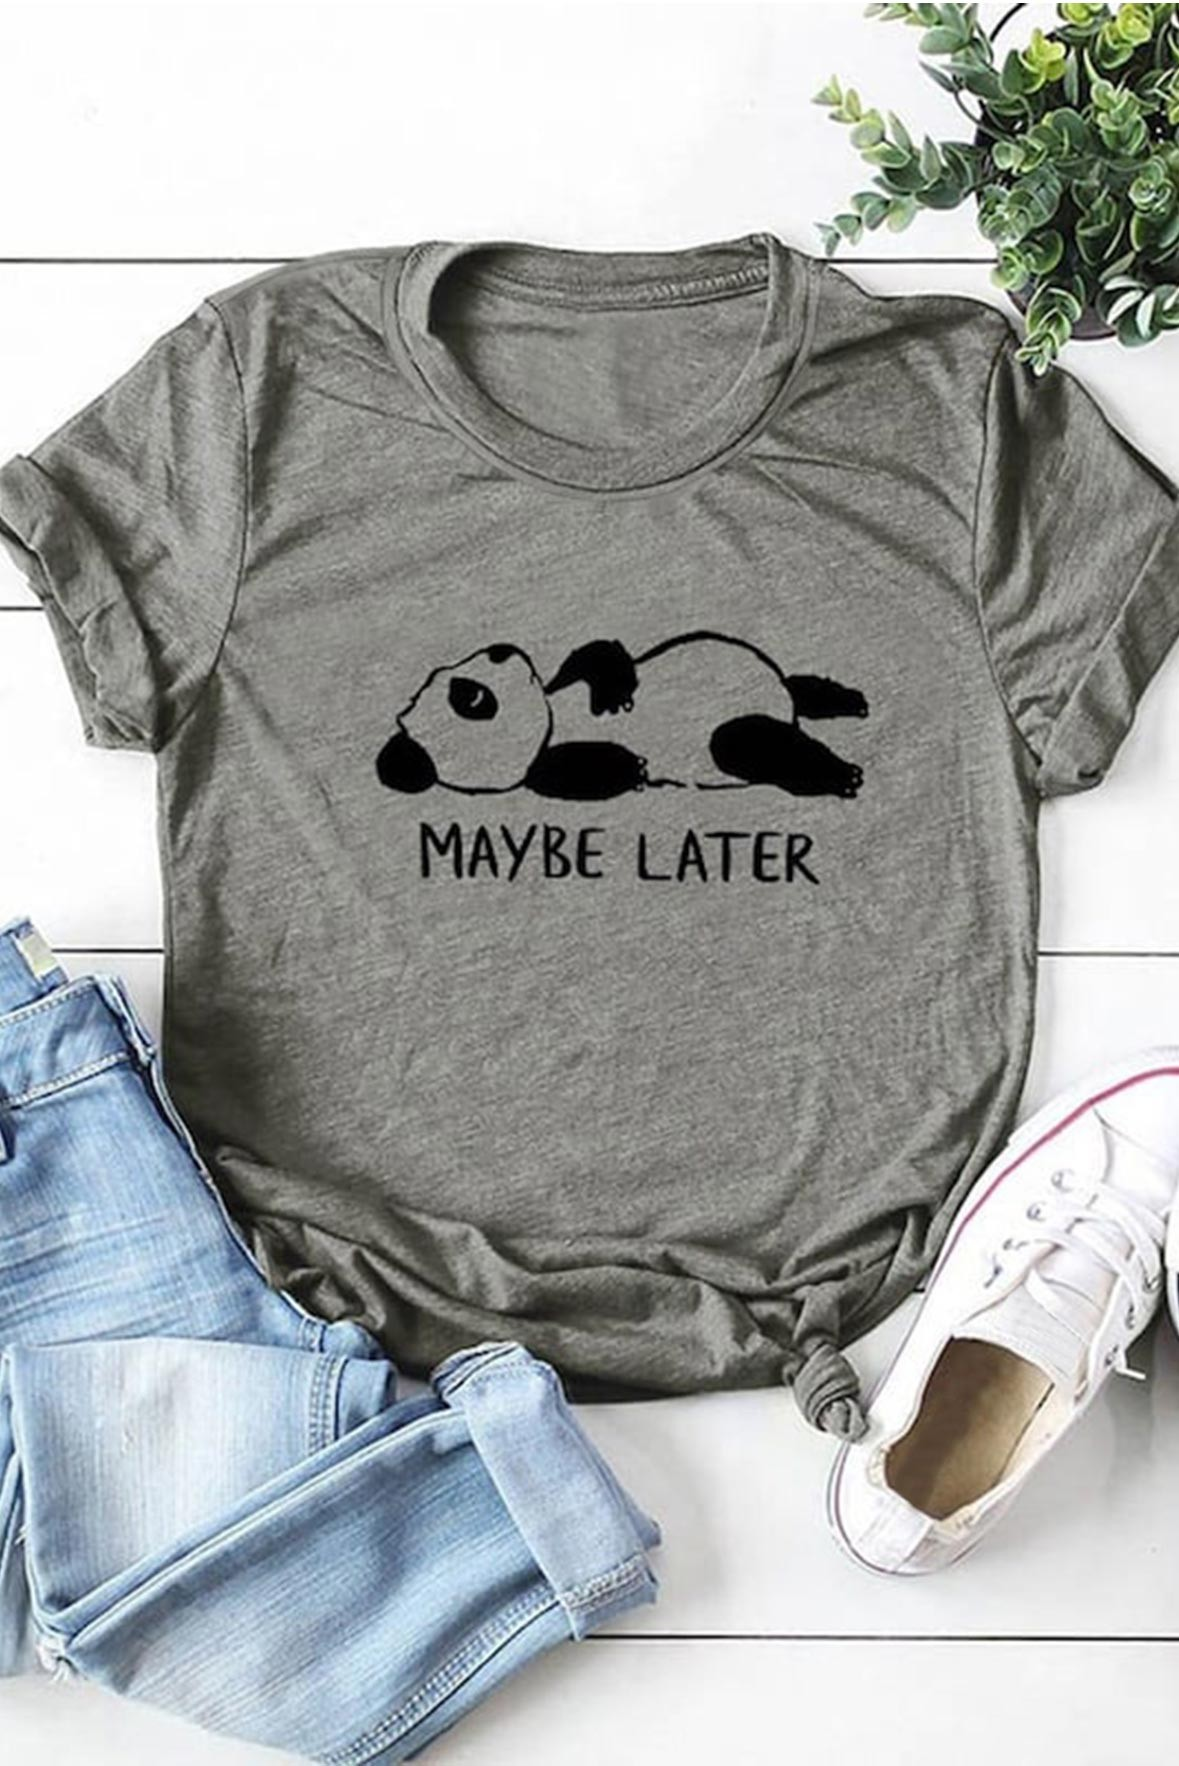 Maybe Later Grey Tee